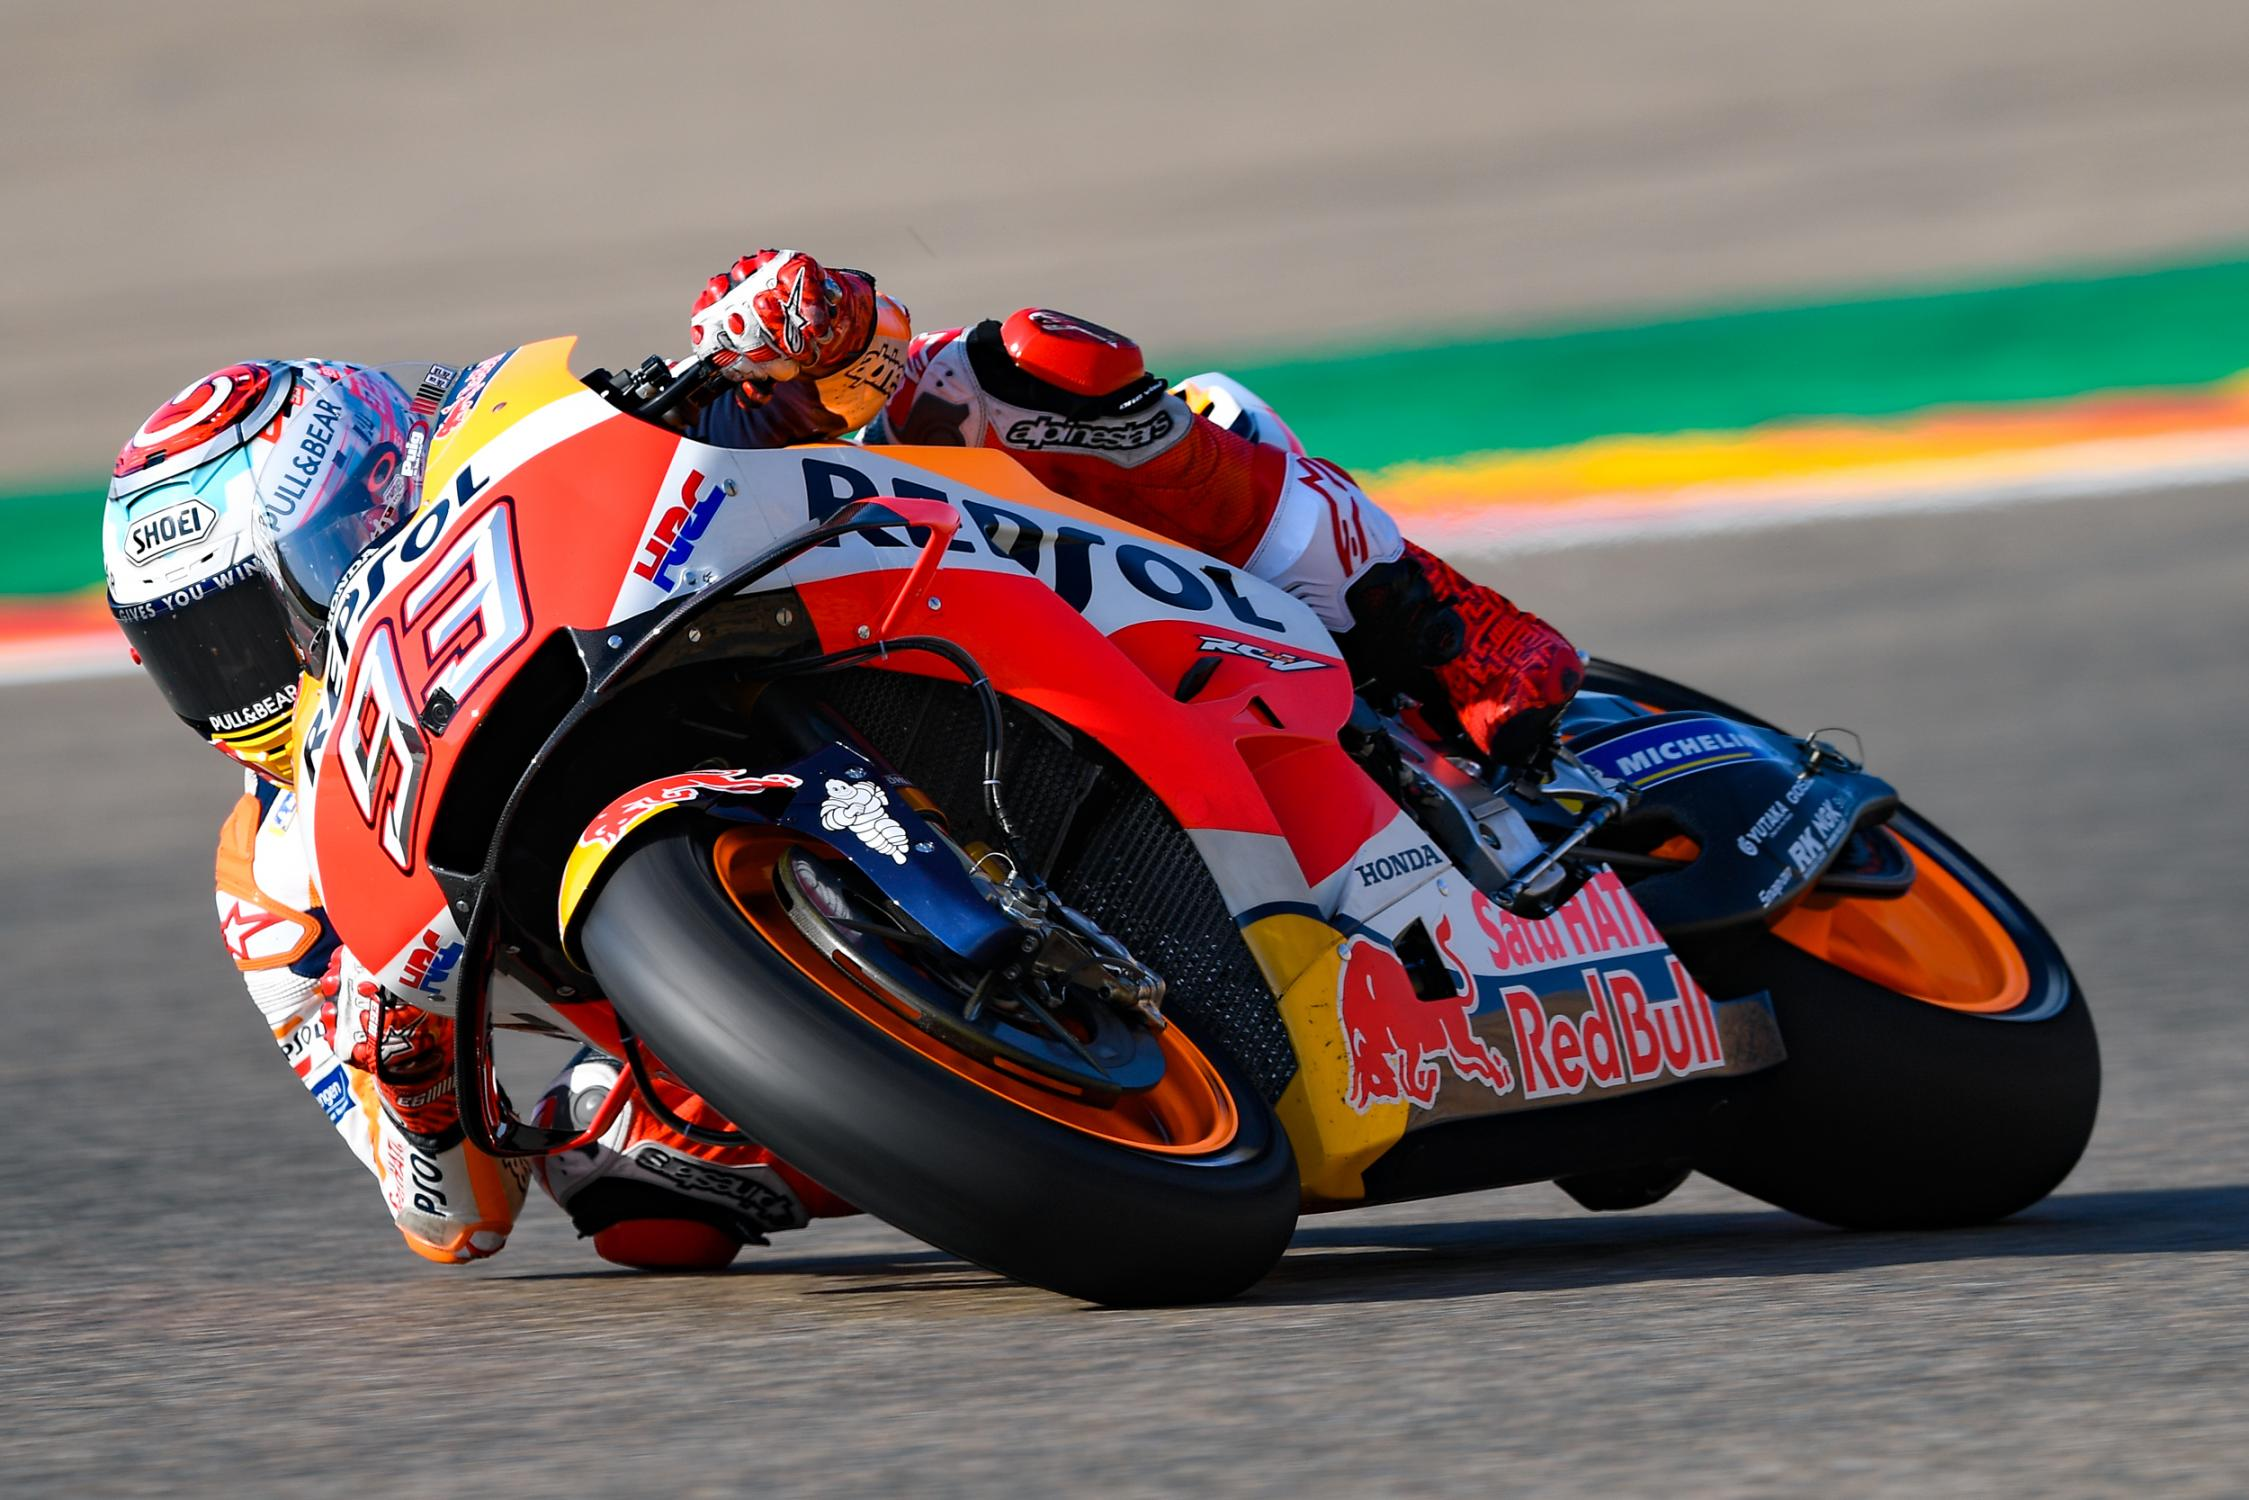 93-marc-marquez-esp_dsc6894.gallery_full_top_fullscreen.jpg